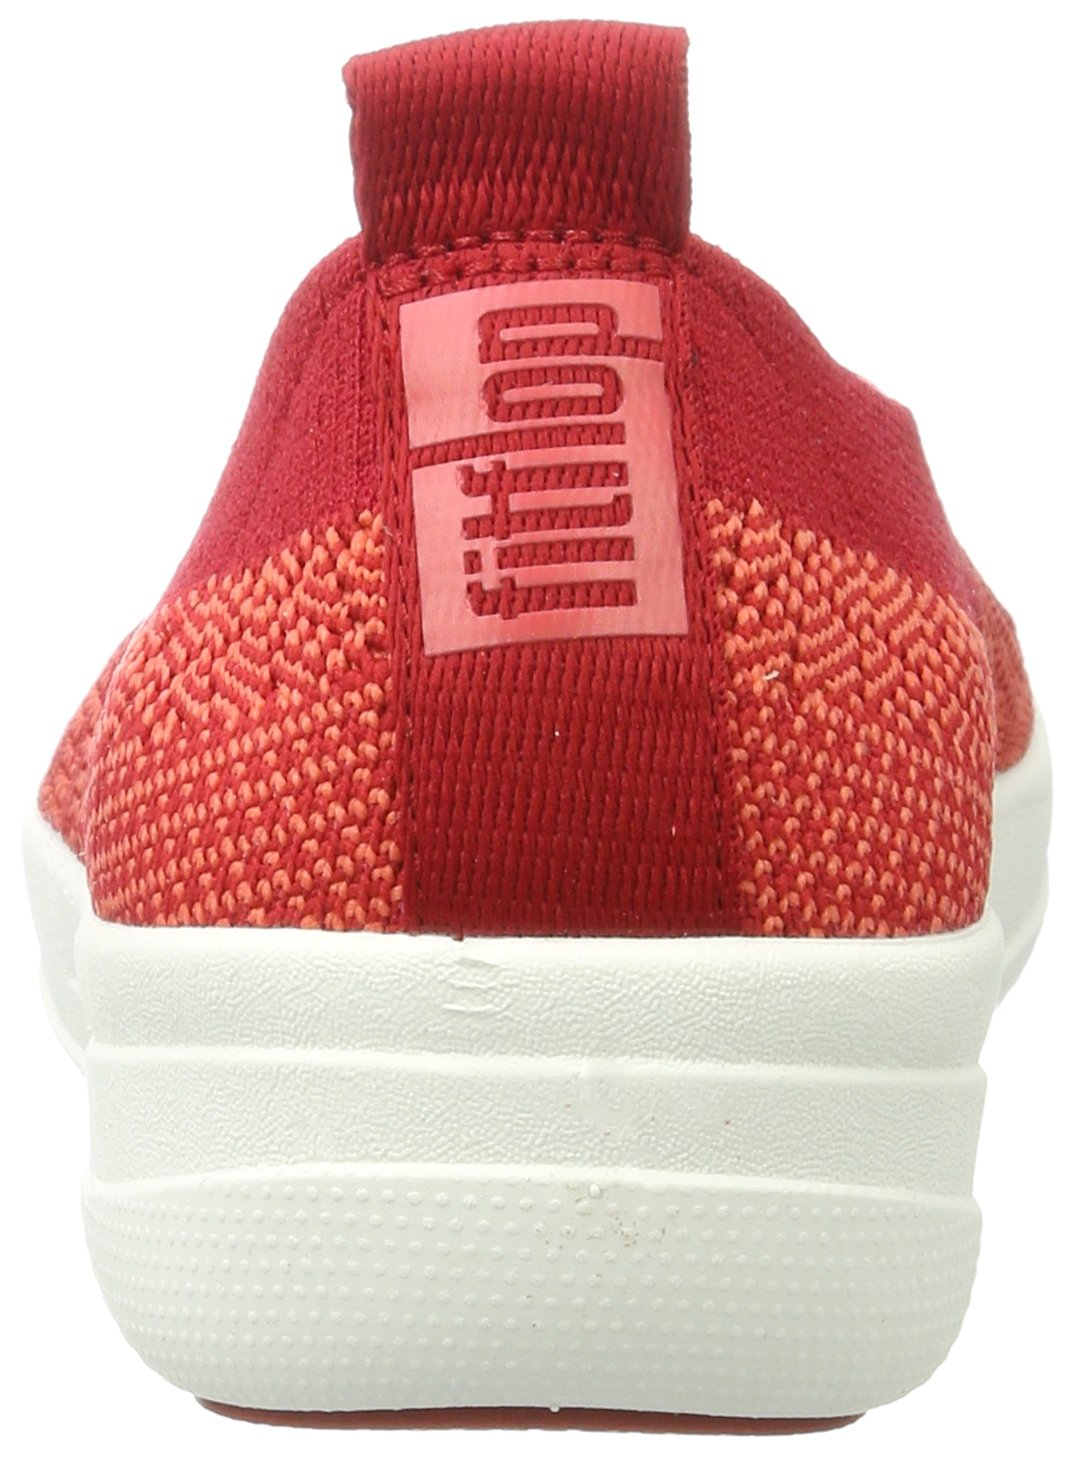 Fitflop H95 Women's Uberknit™ Slip-On Ballerinas, Classic Red - 8.5 by FitFlop (Image #2)